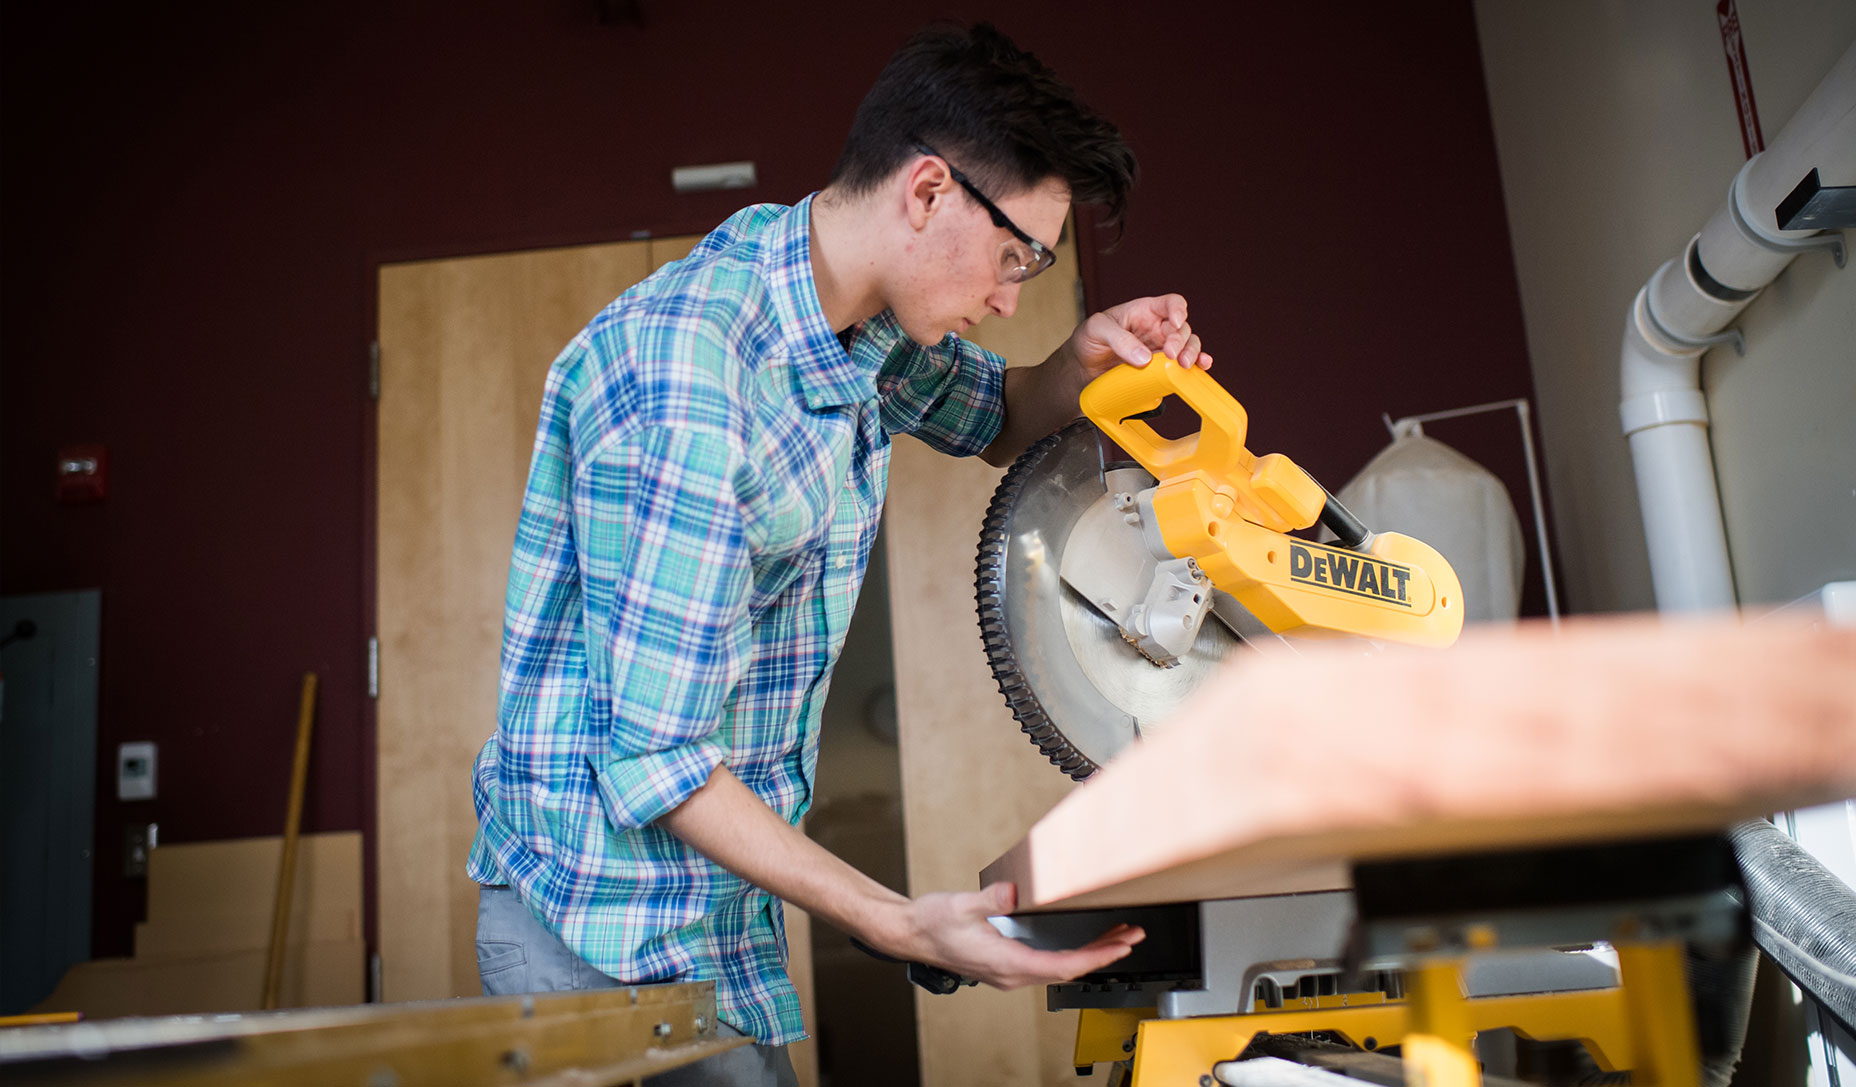 Woodworker Justin Fiaschetti uses a saw in the Fiaschetti Woodworking workshop.